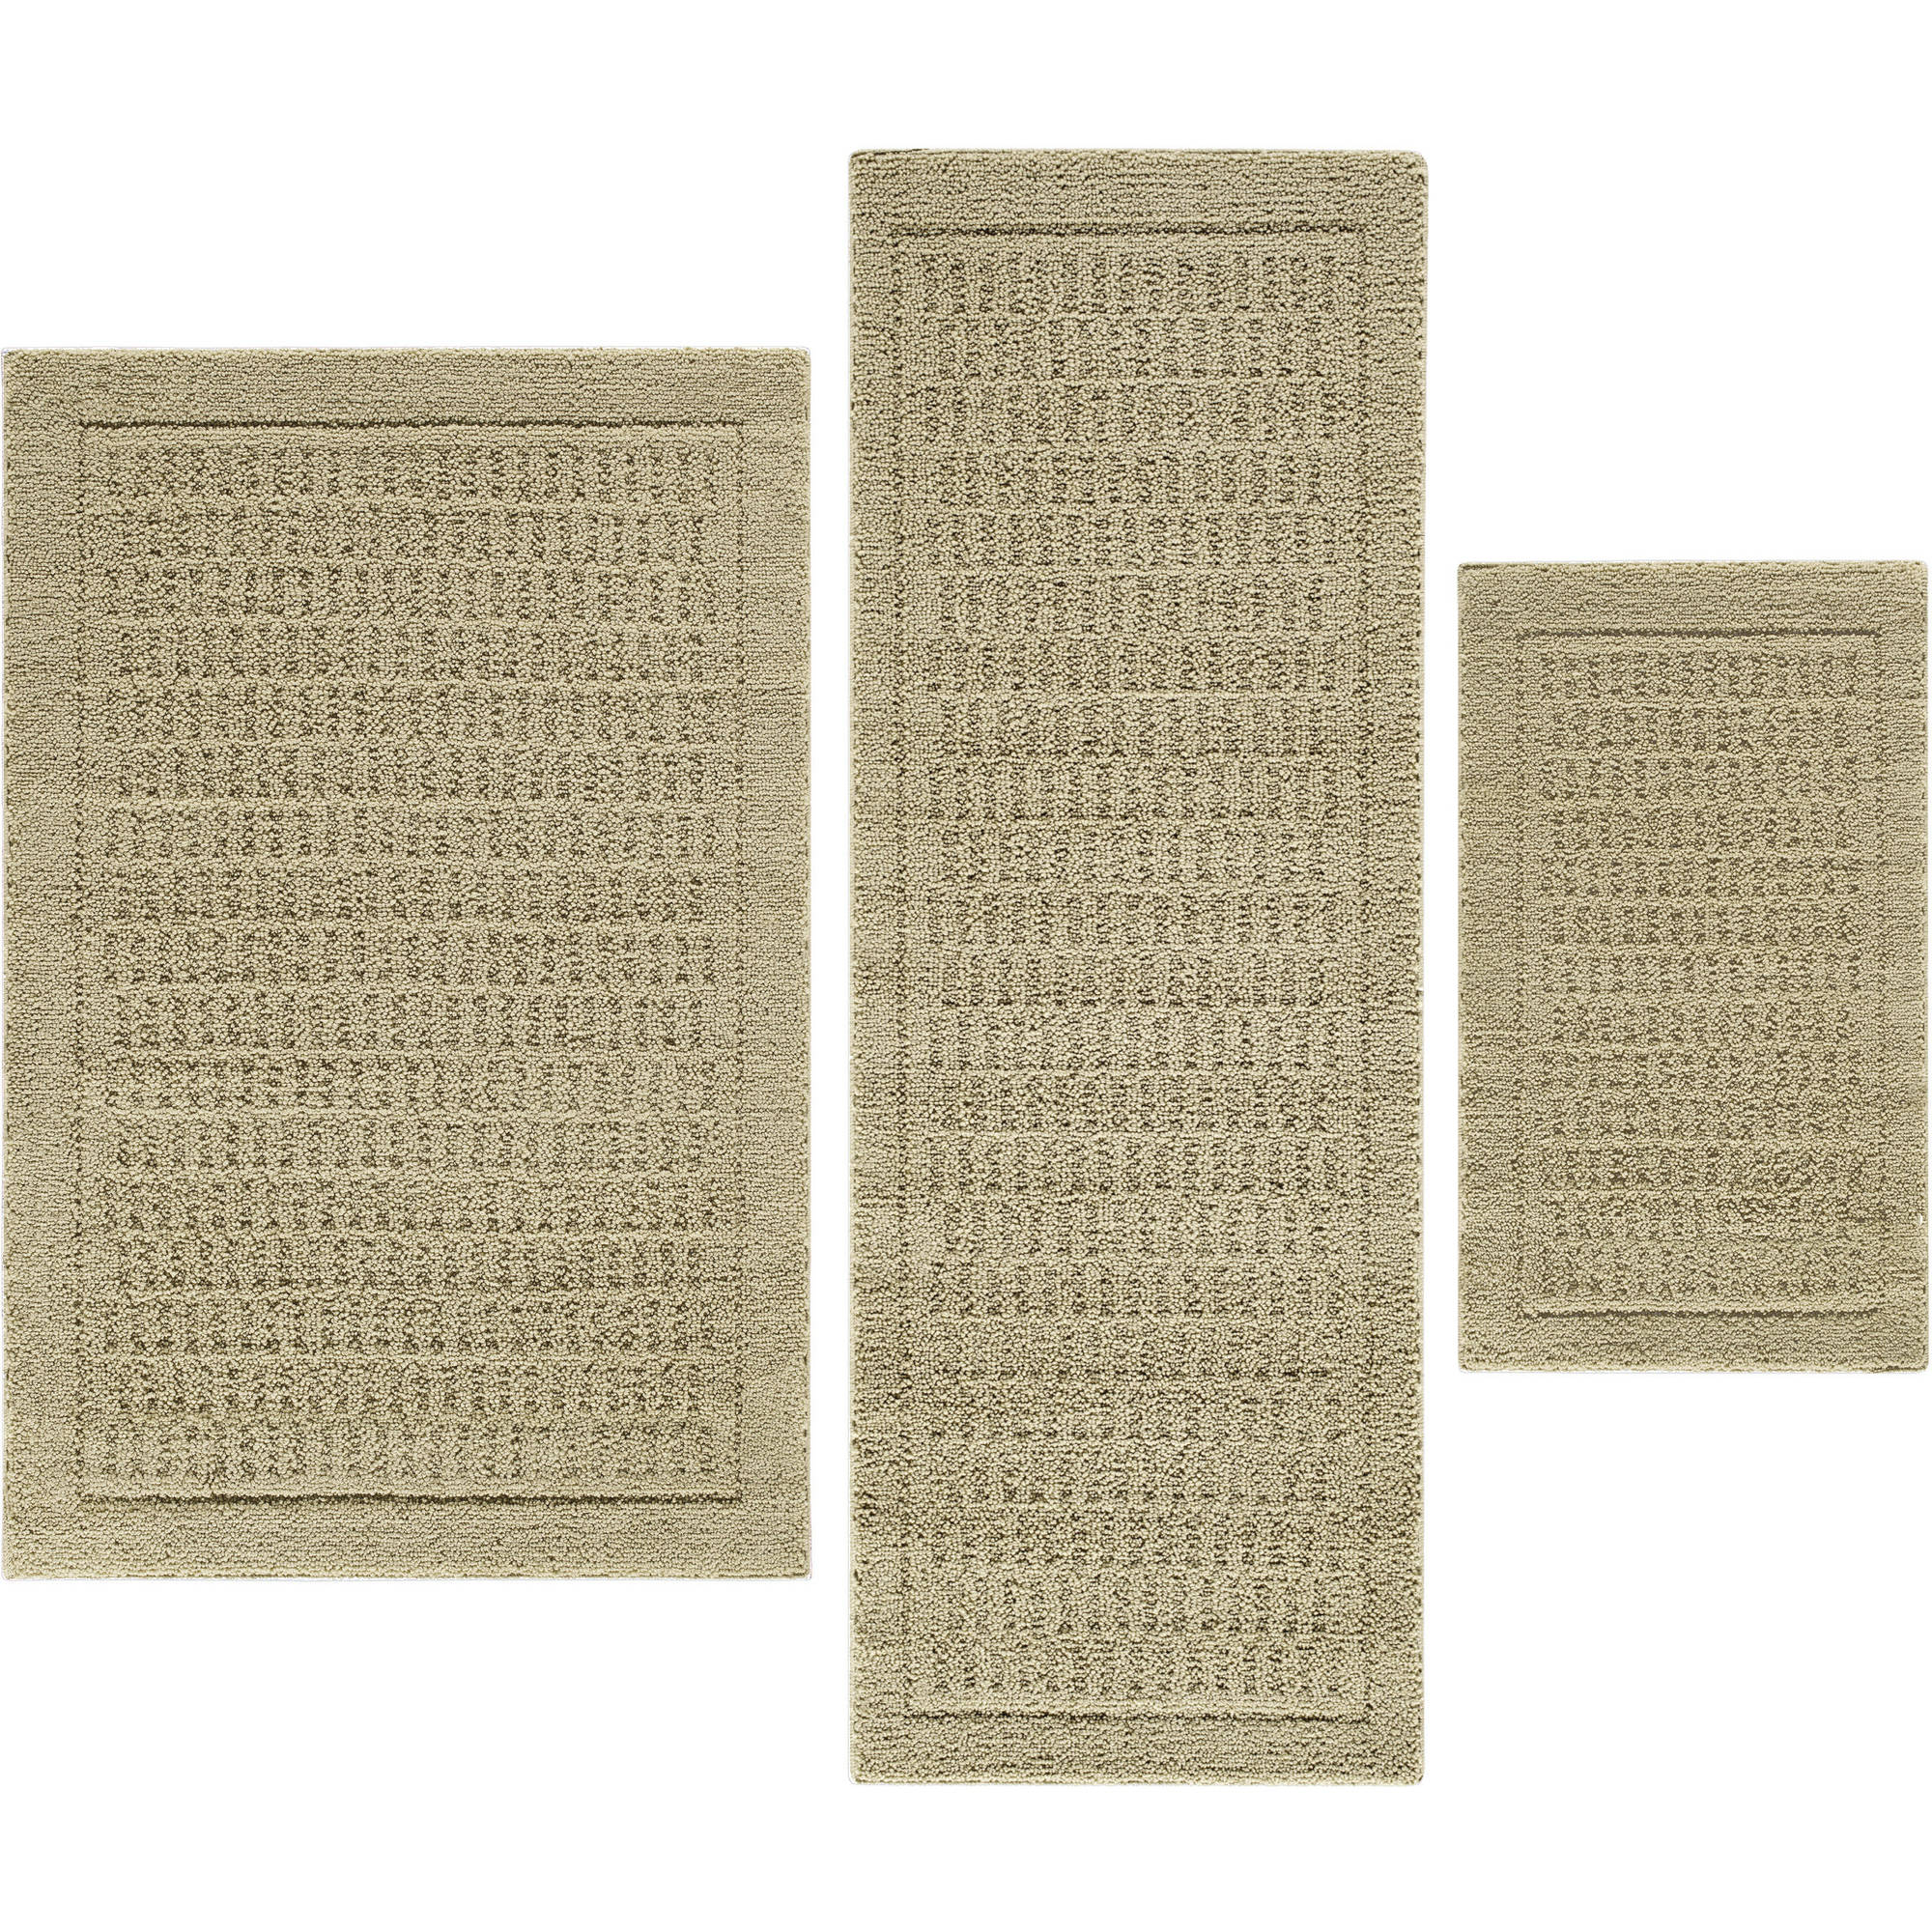 Mainstays Dylan Nylon 3 Piece Accent Rug Set